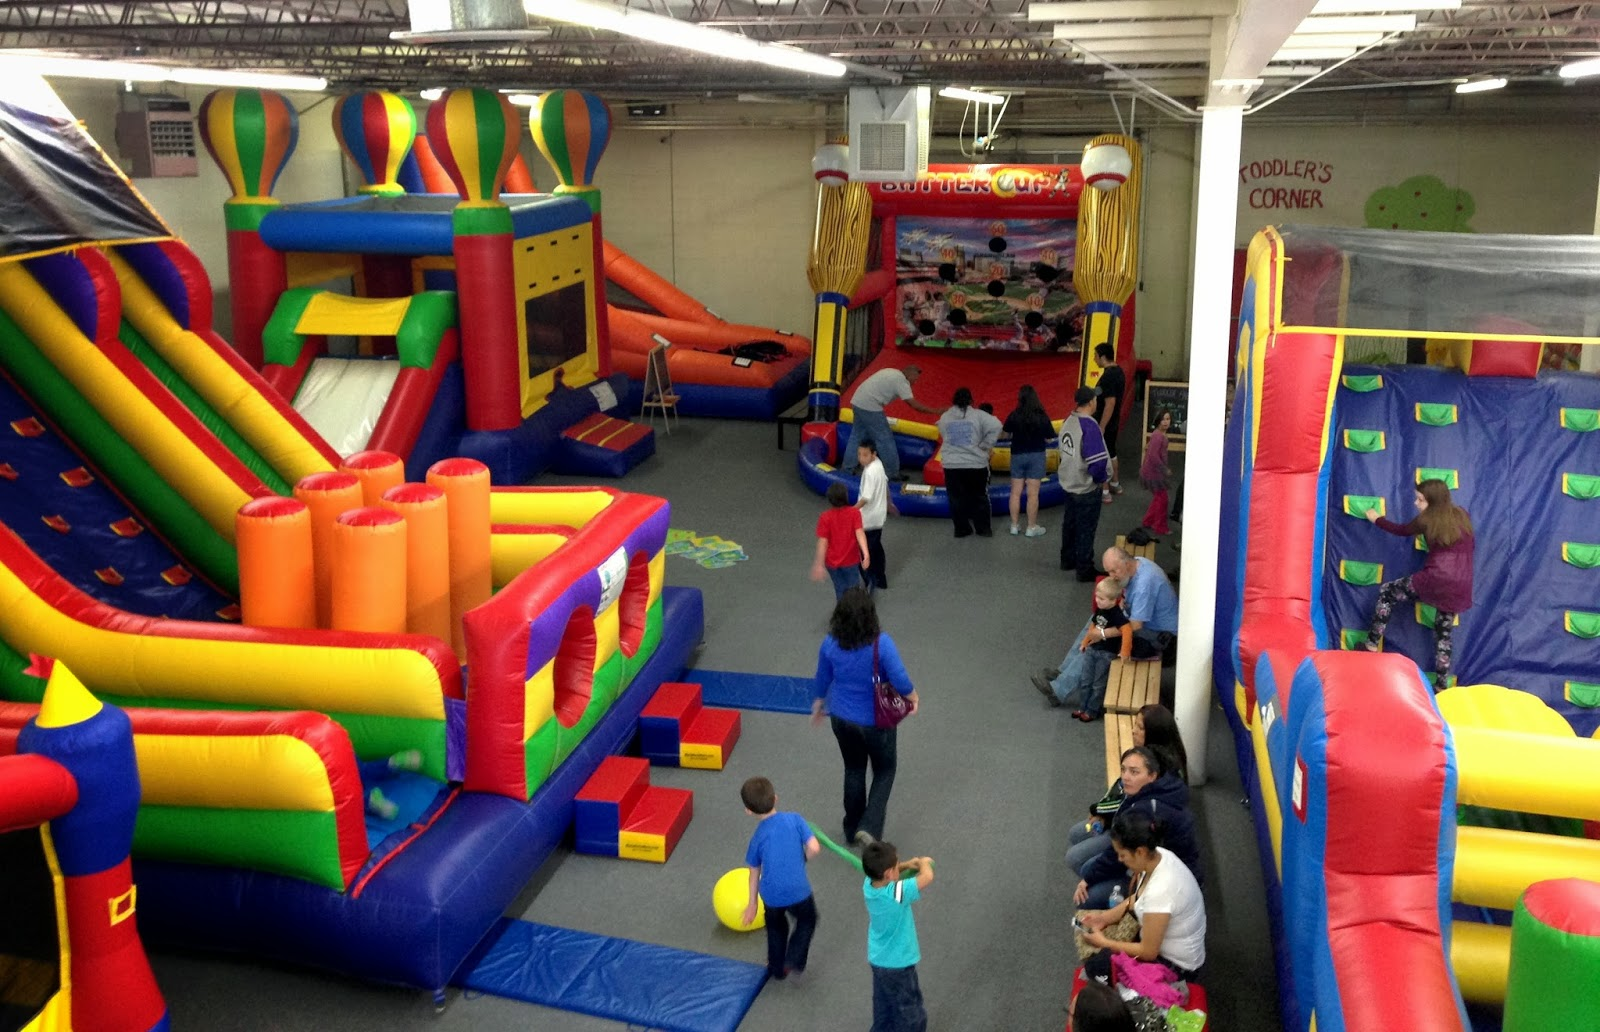 Colorado Springs House Of Bounce Review By Shannon Carino